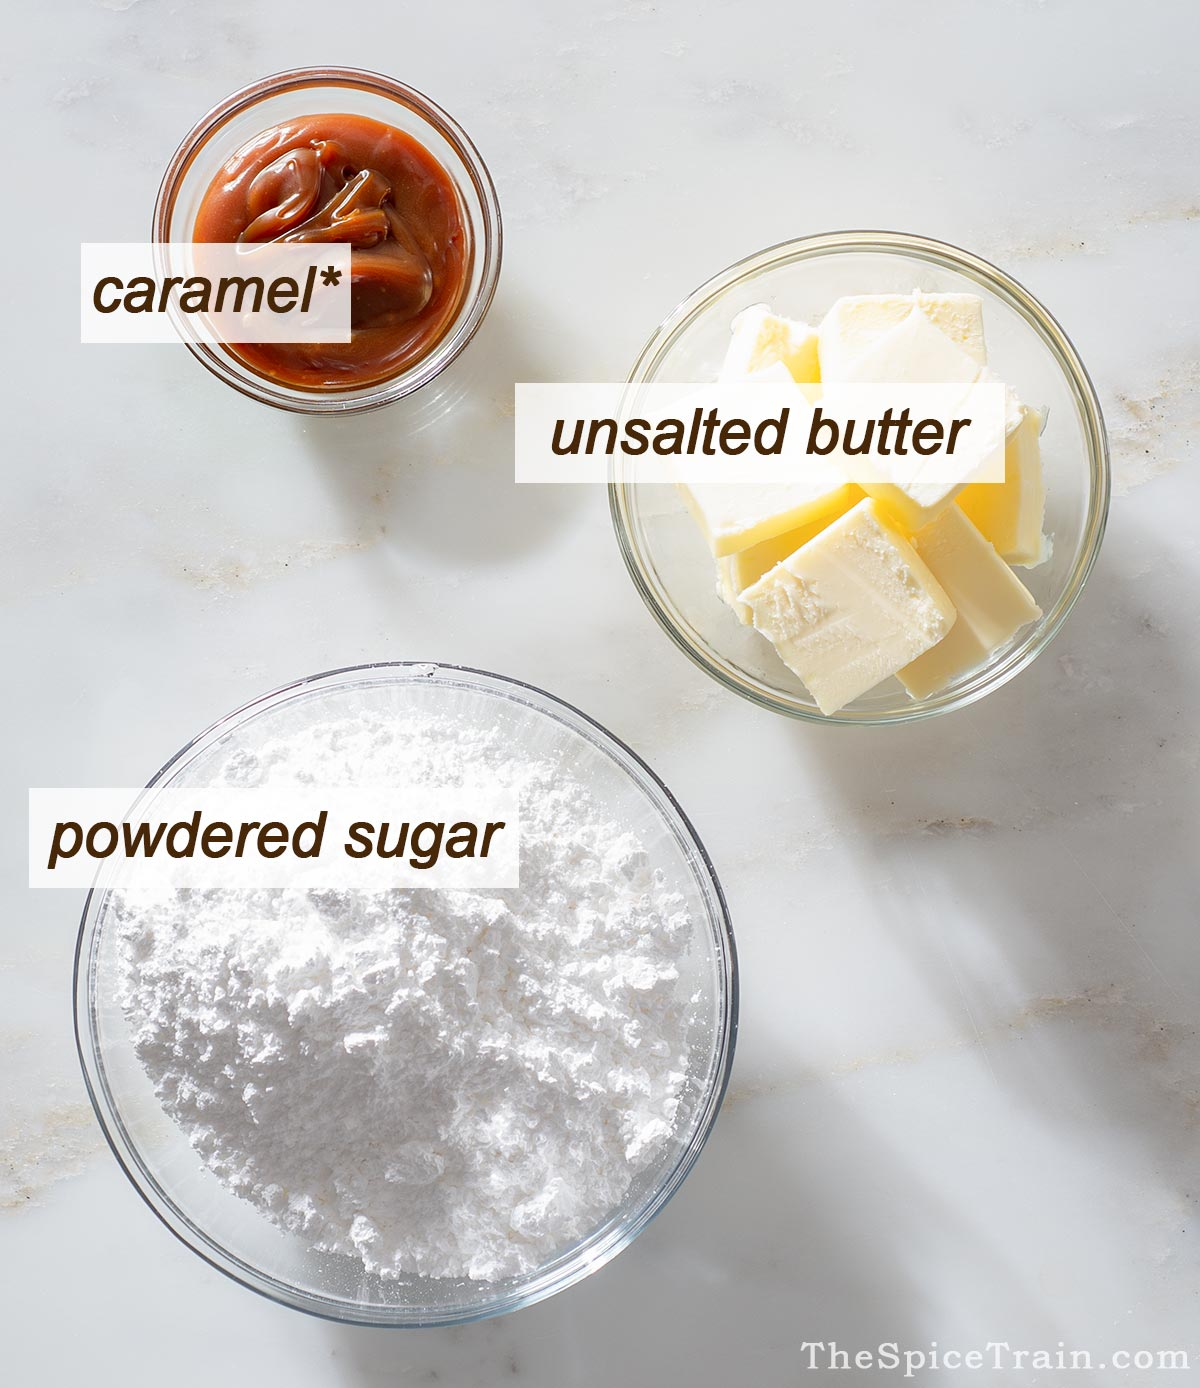 All ingredients needed to make a caramel buttercream frosting.